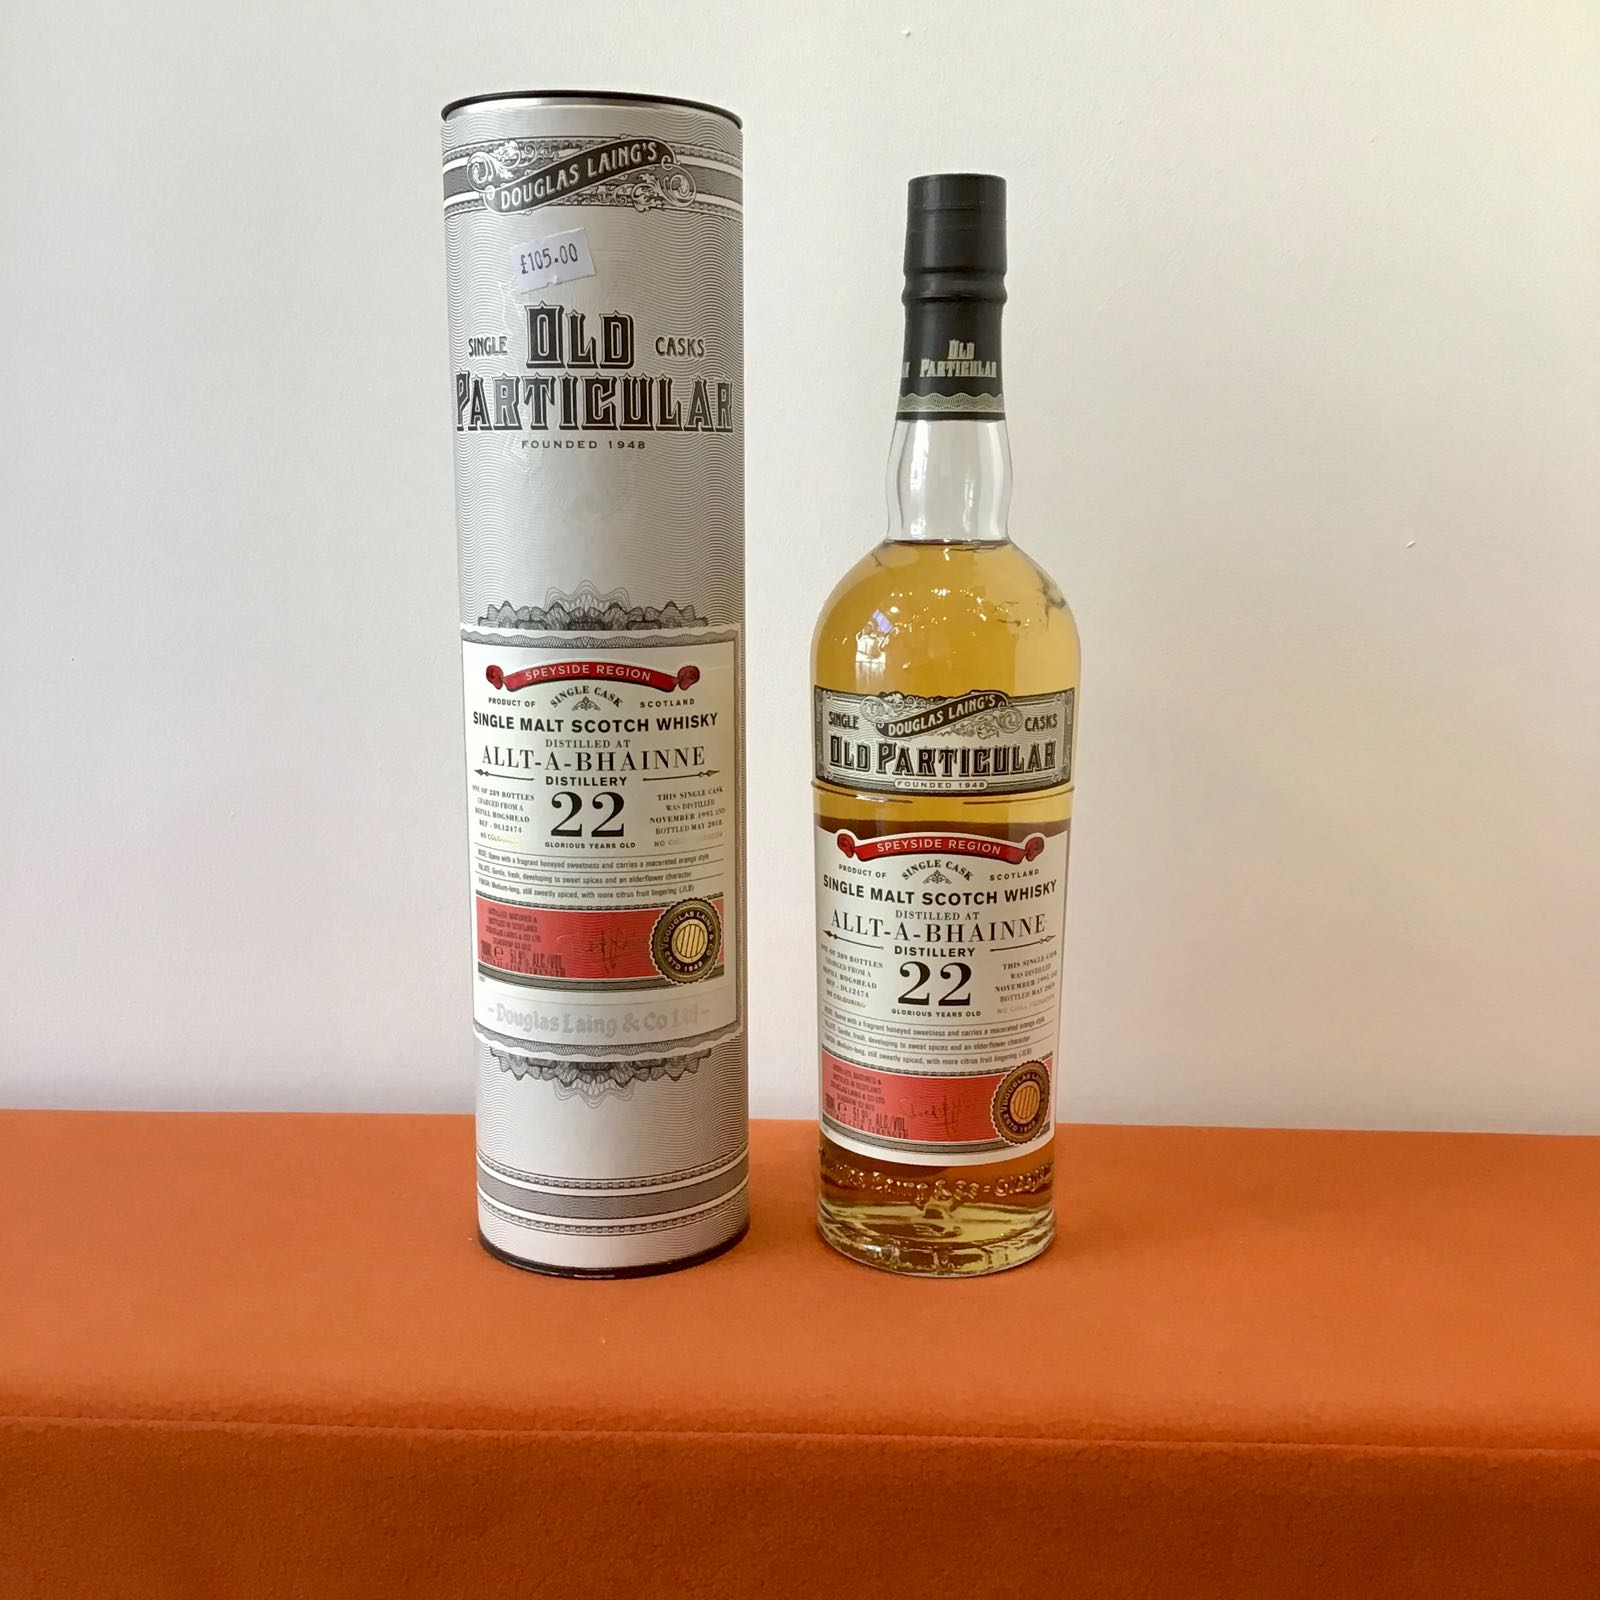 Douglas Laing Old Particular: Allt a Bhainne 22 Year Old